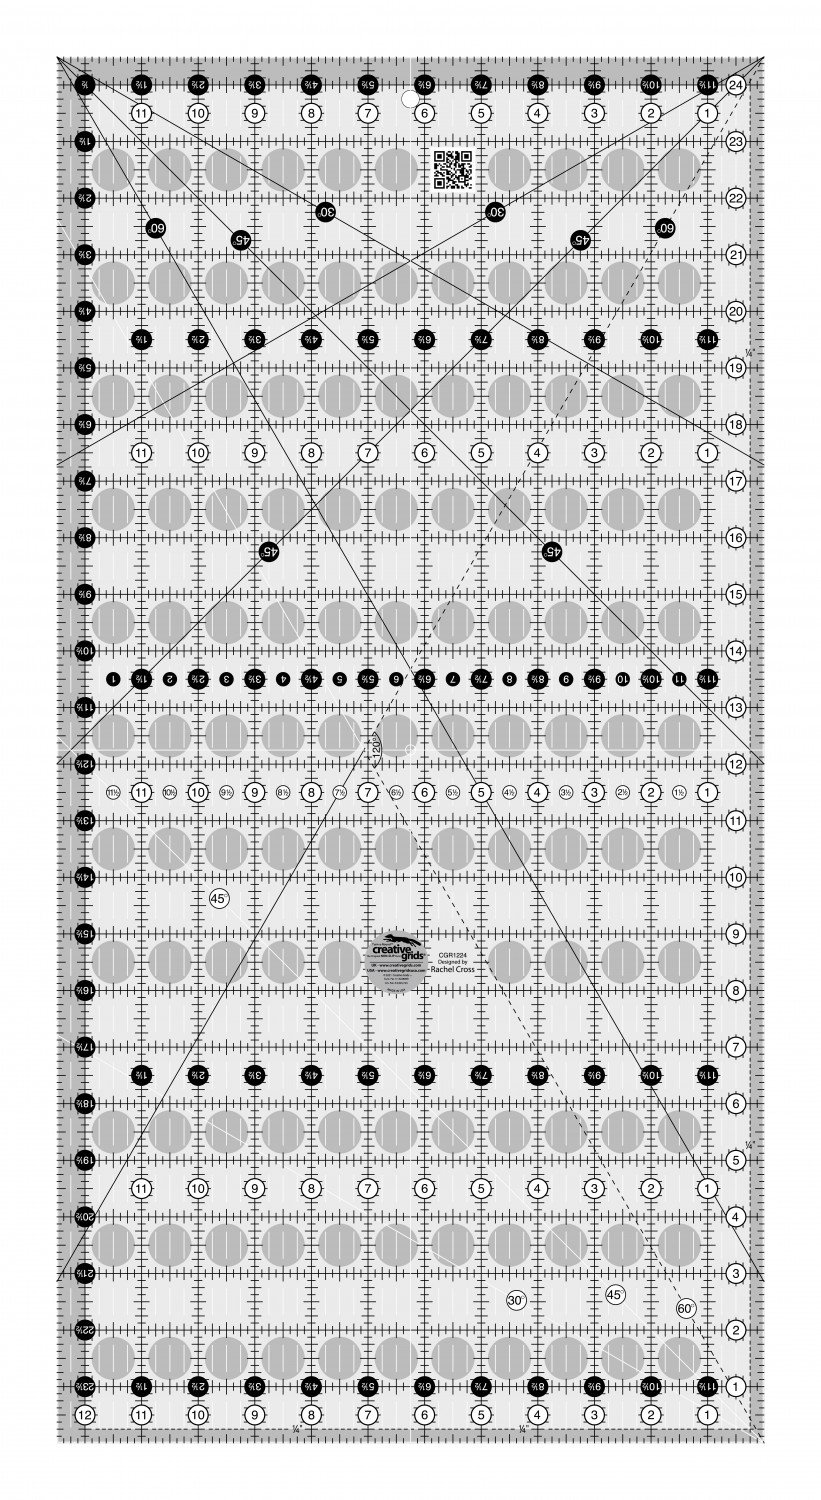 Creative Grids 12-1/2 x 24-1/2 Inch The Big Easy Ruler